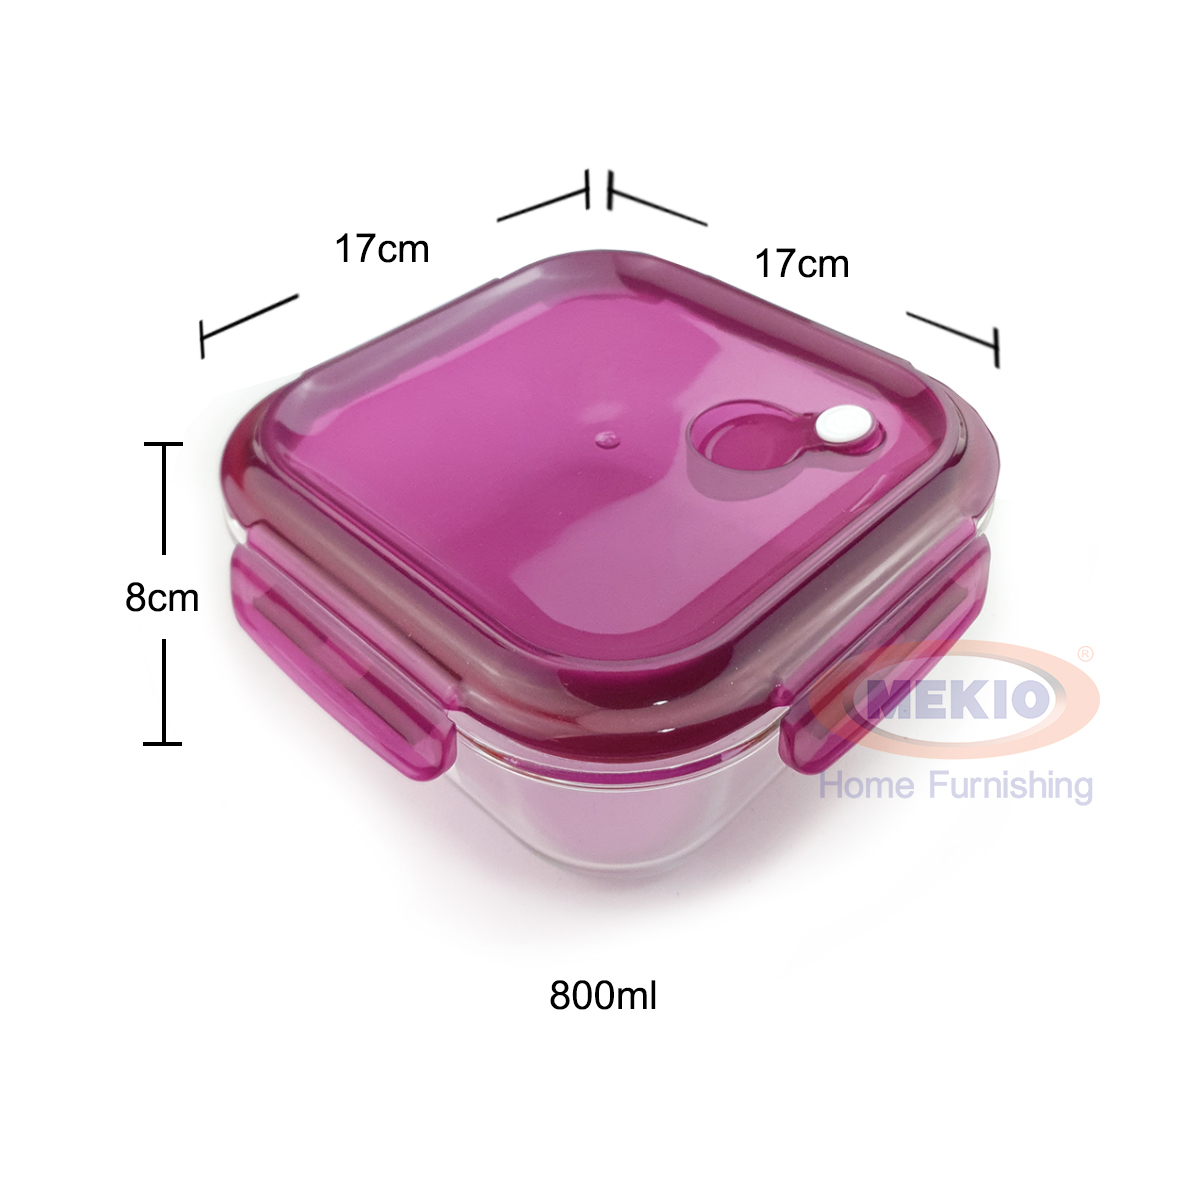 Food glass container E 1565 800ml